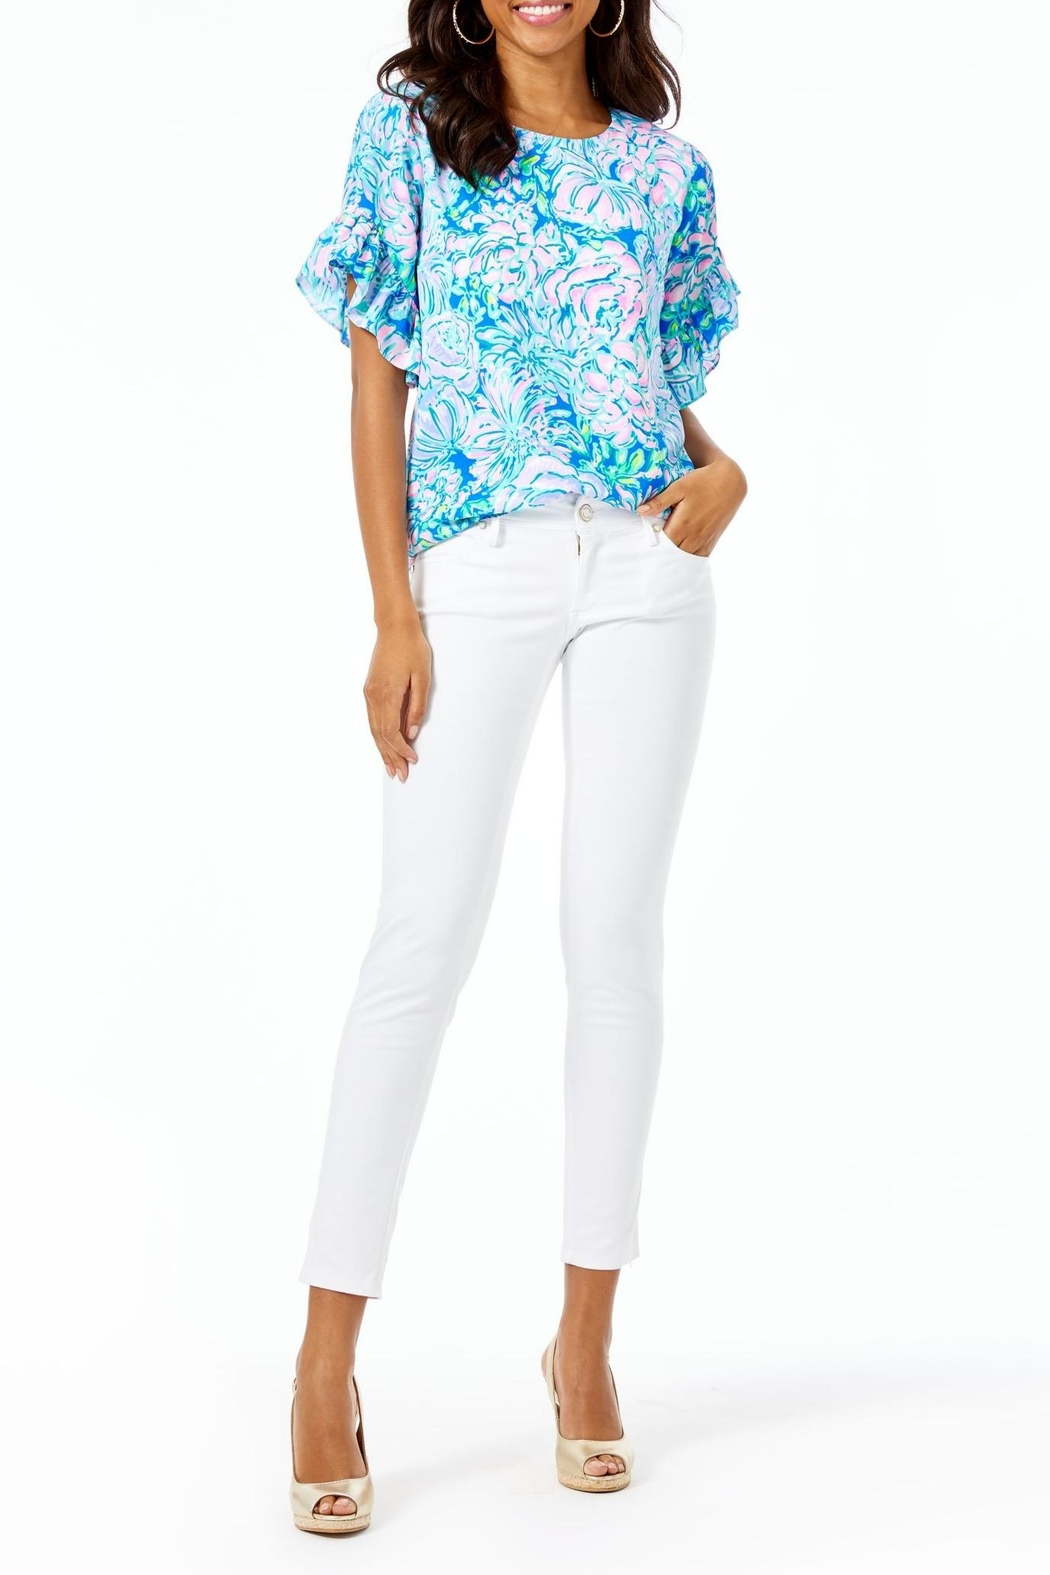 Lilly Pulitzer Darlah Top - Back Cropped Image